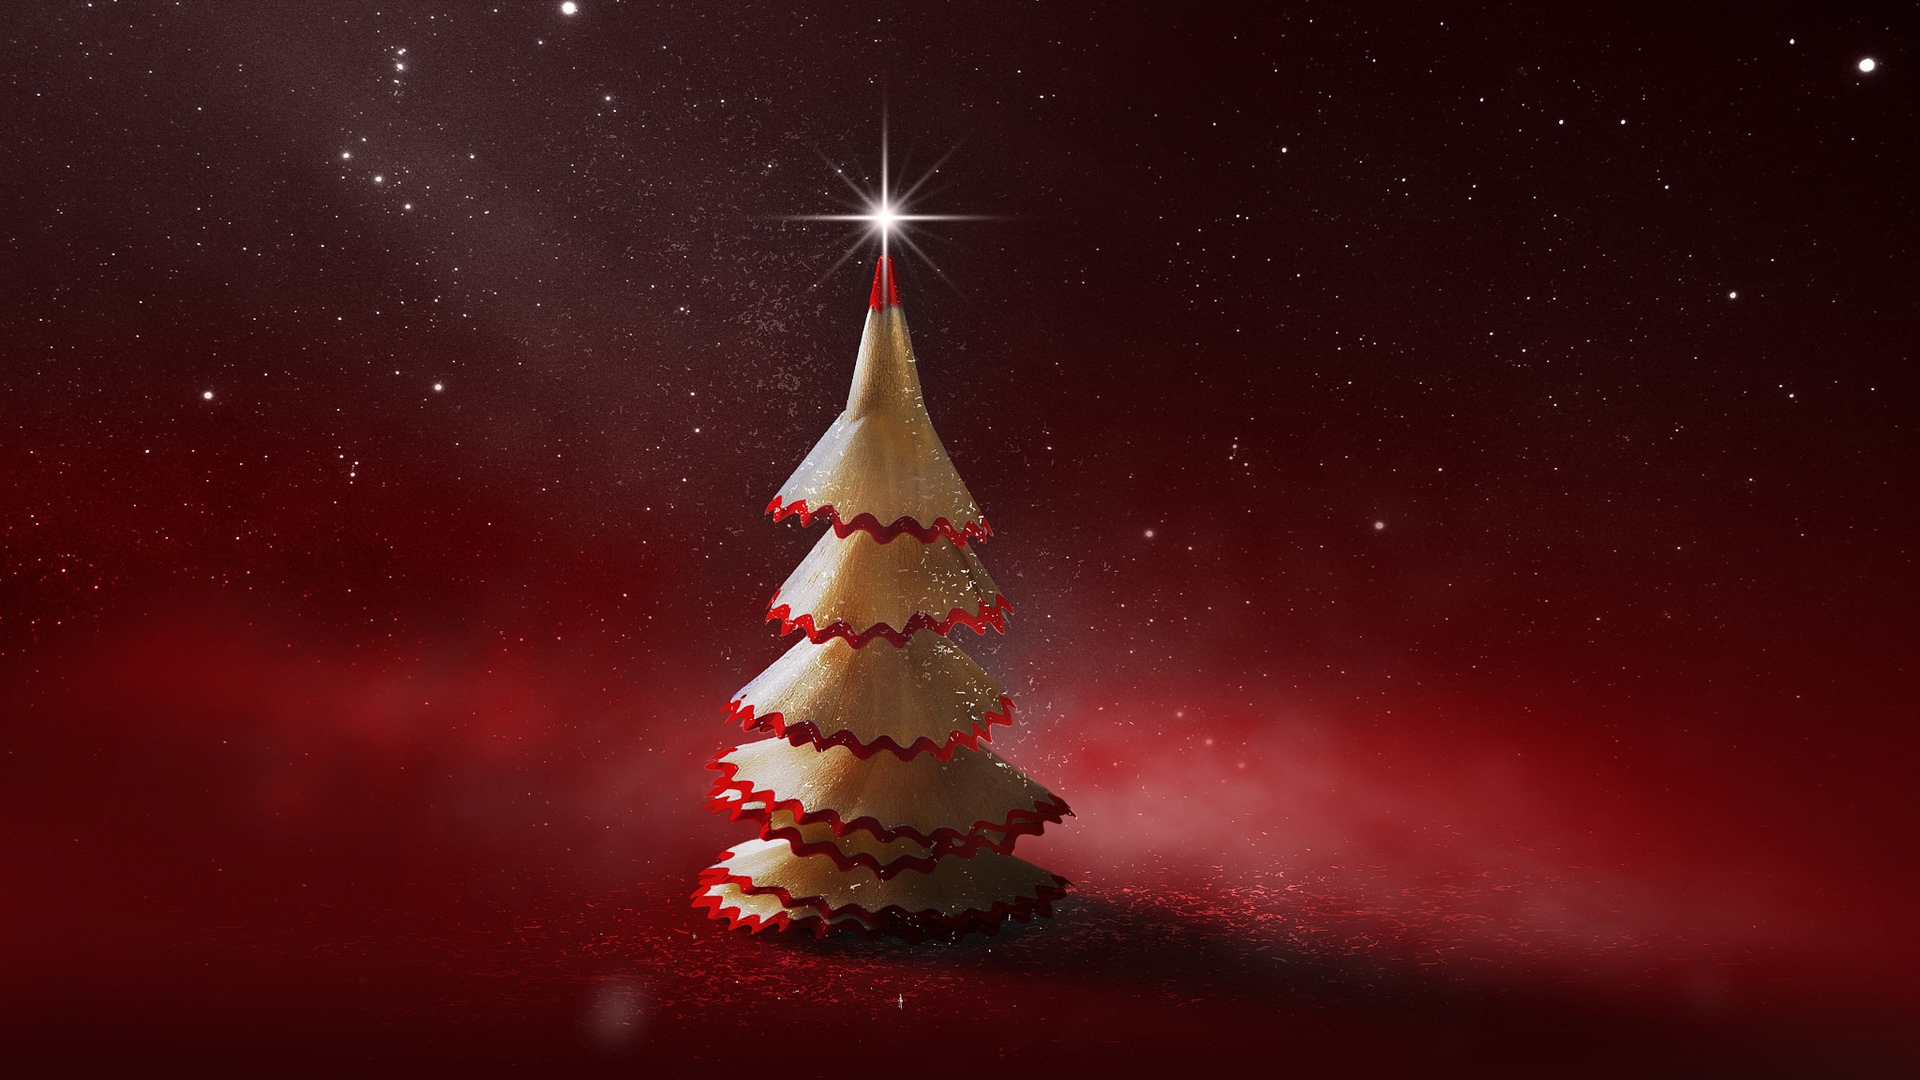 Image: Tree, pencil, red background, stars, twinkle